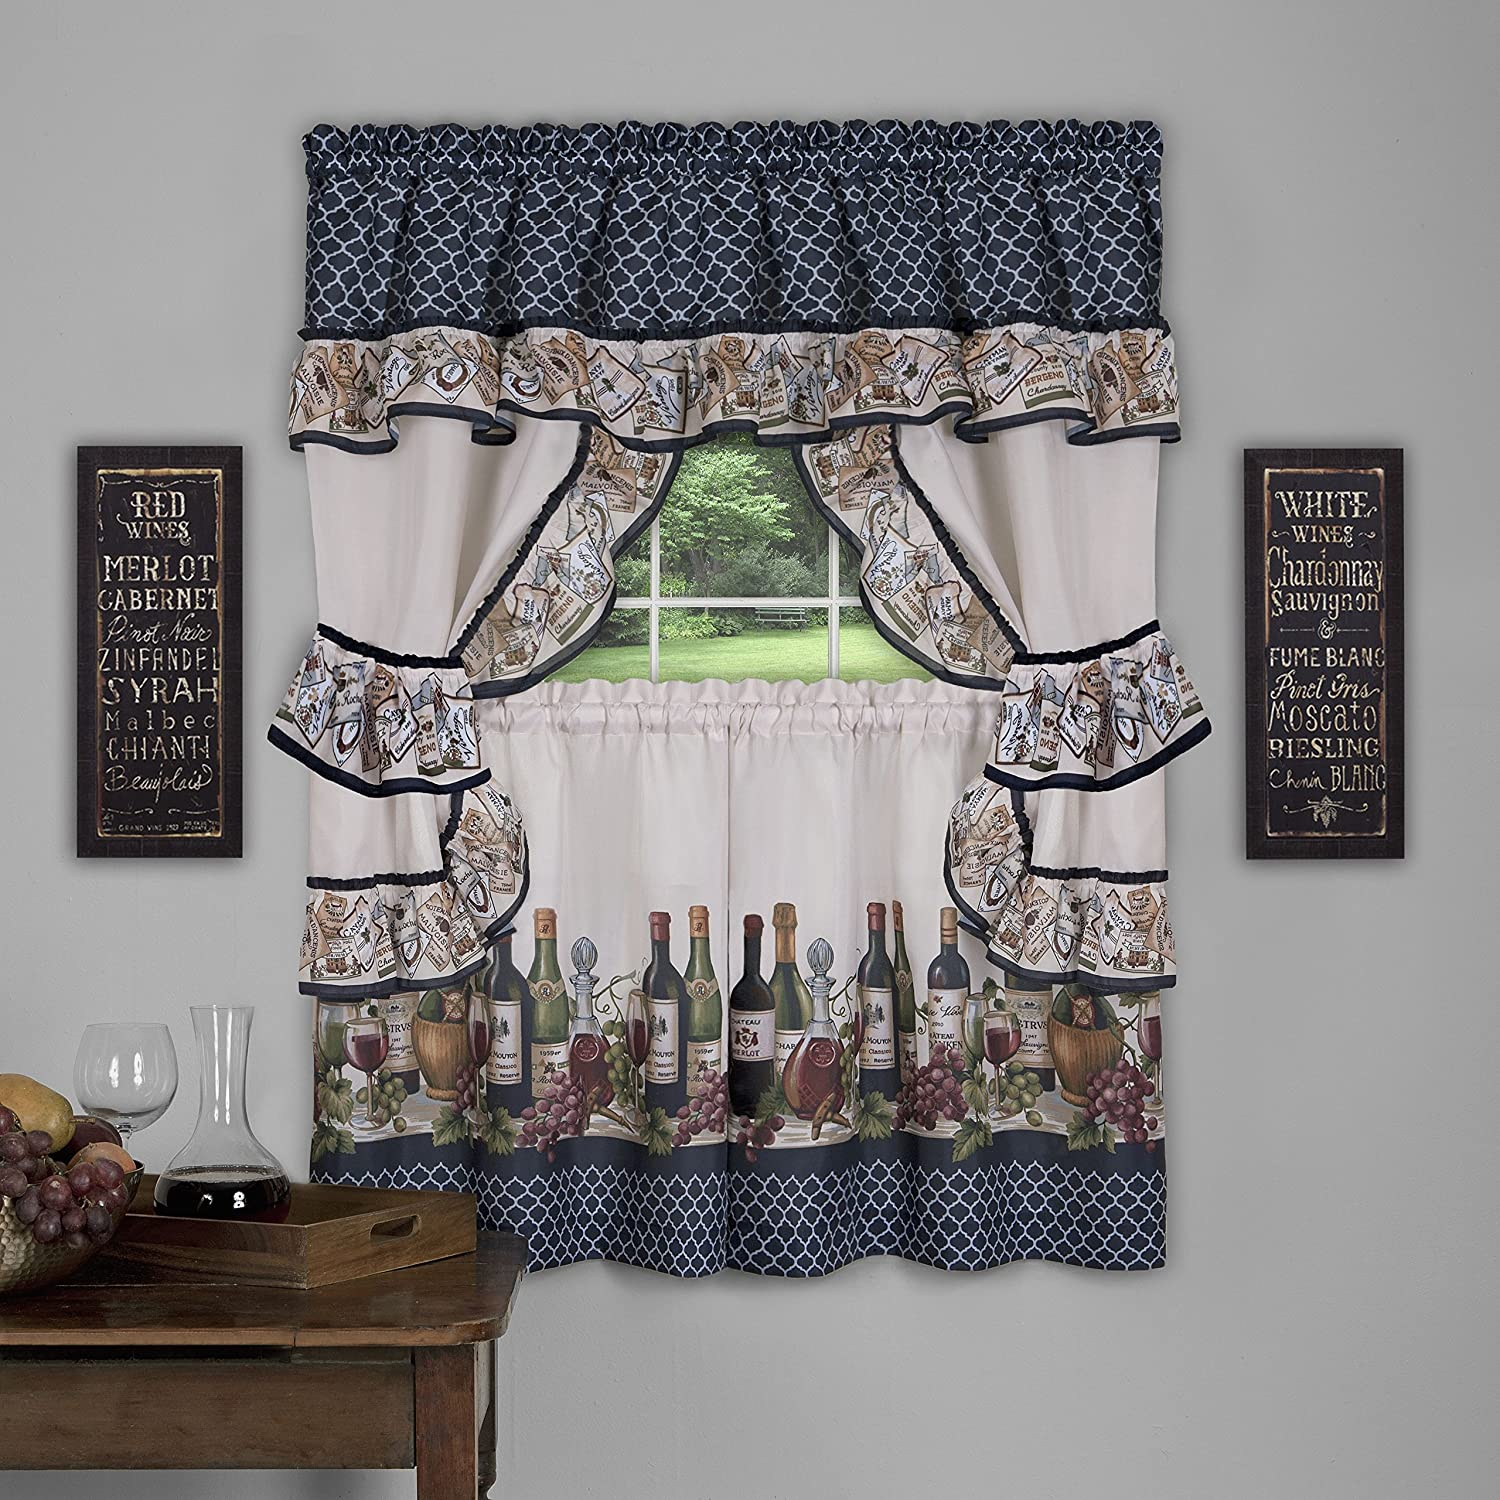 Achim Home Furnishings Chateau Window Curtain Cottage Set, 57 X 24, Navy 57 X 24 CHCS24NY12